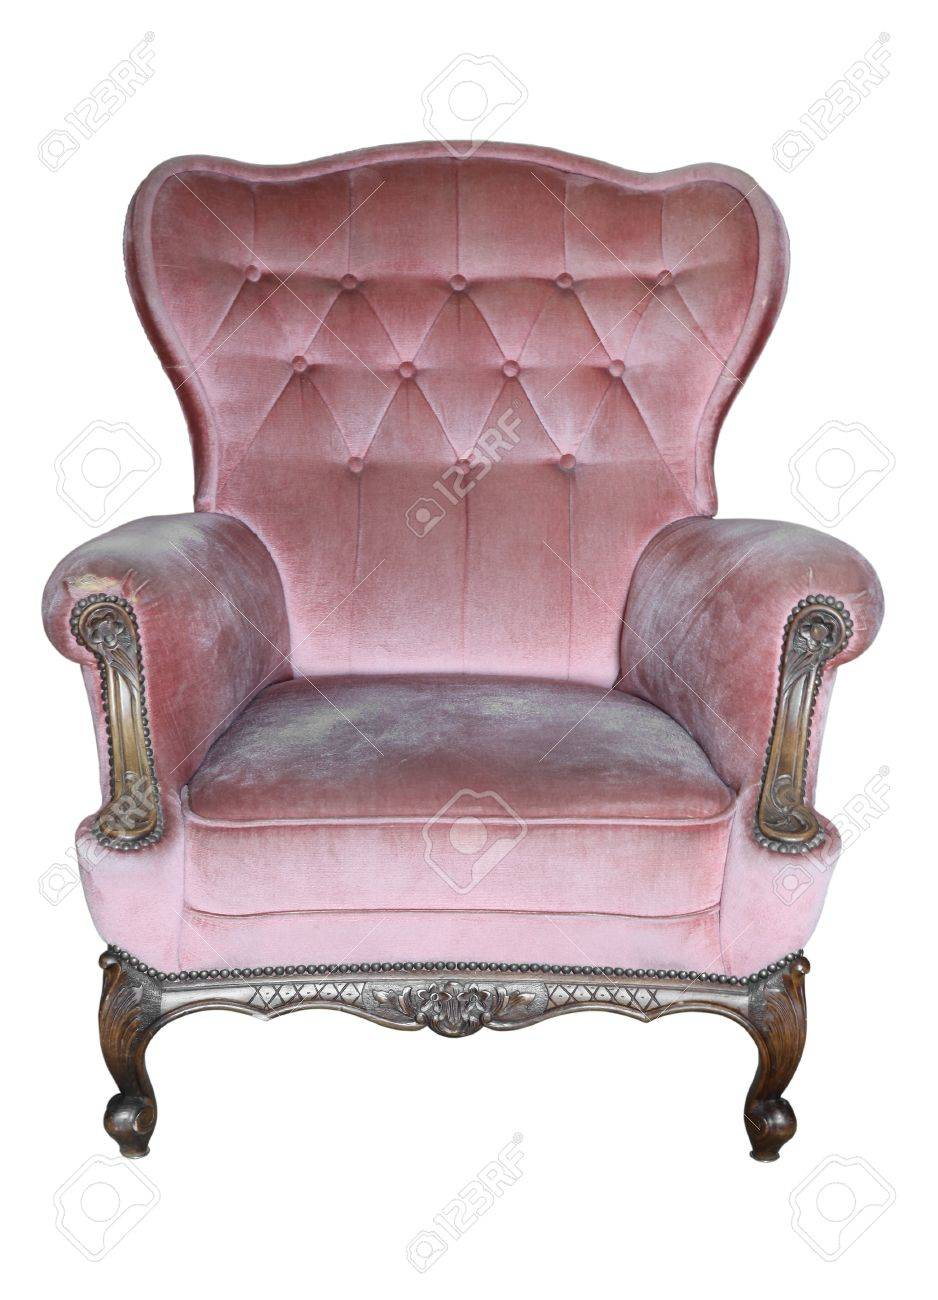 Stock Photo - Vintage Armchair Pink Fabric Classical Style Sofa